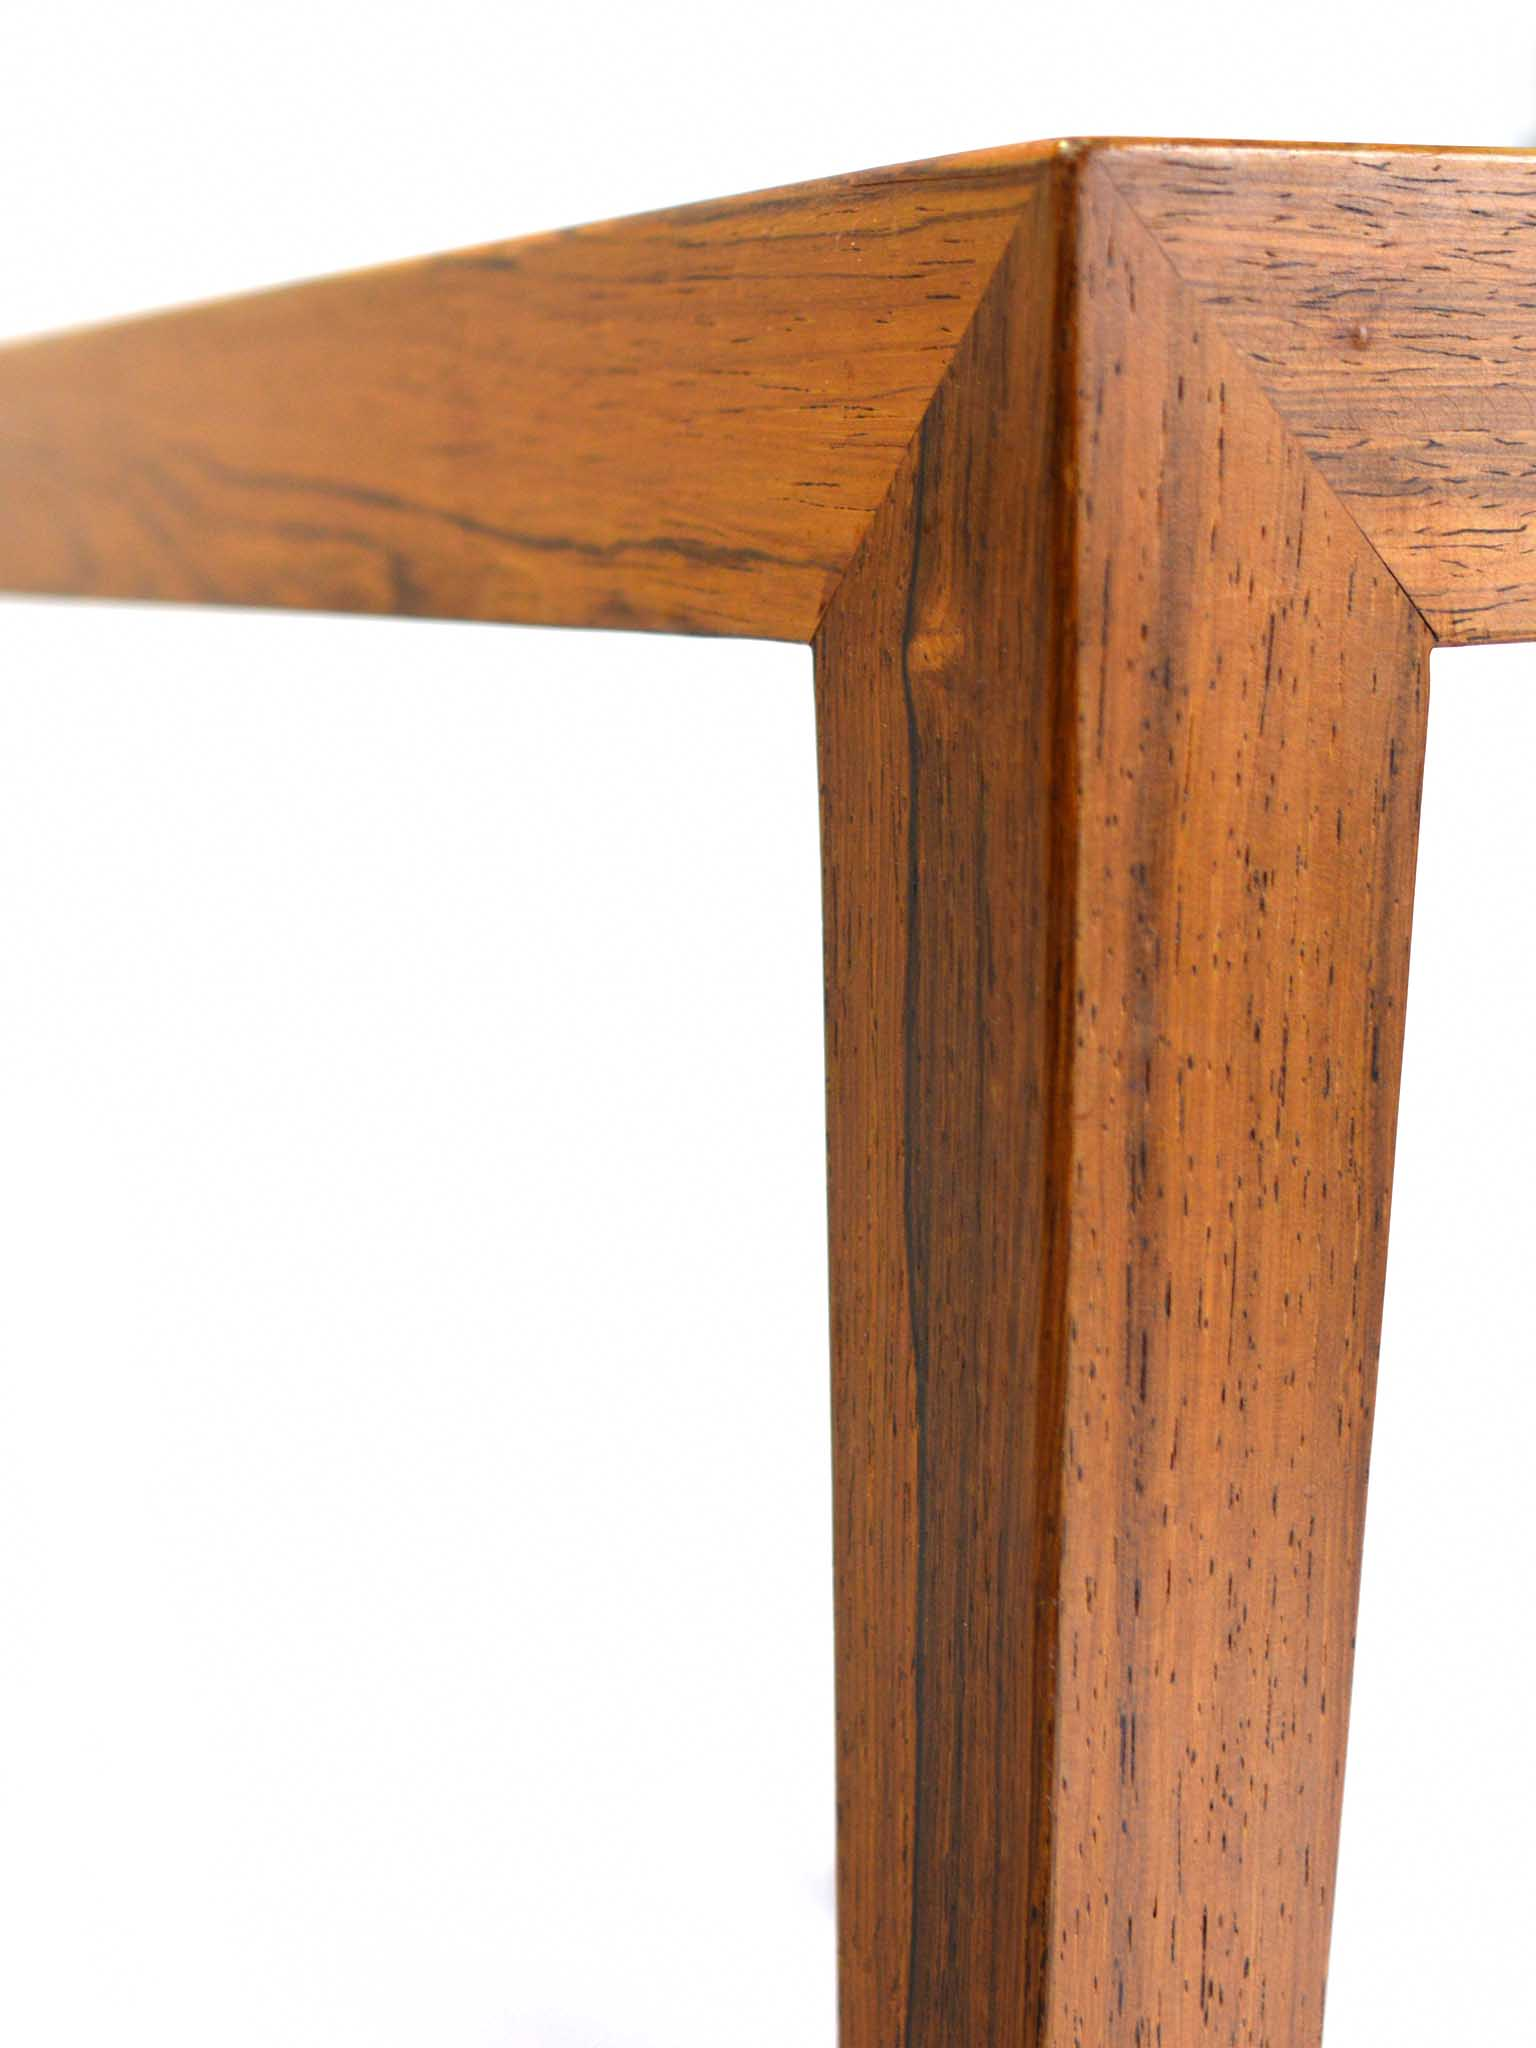 PAIR OF END TABLES BY SEVERIN HANSEN JR.